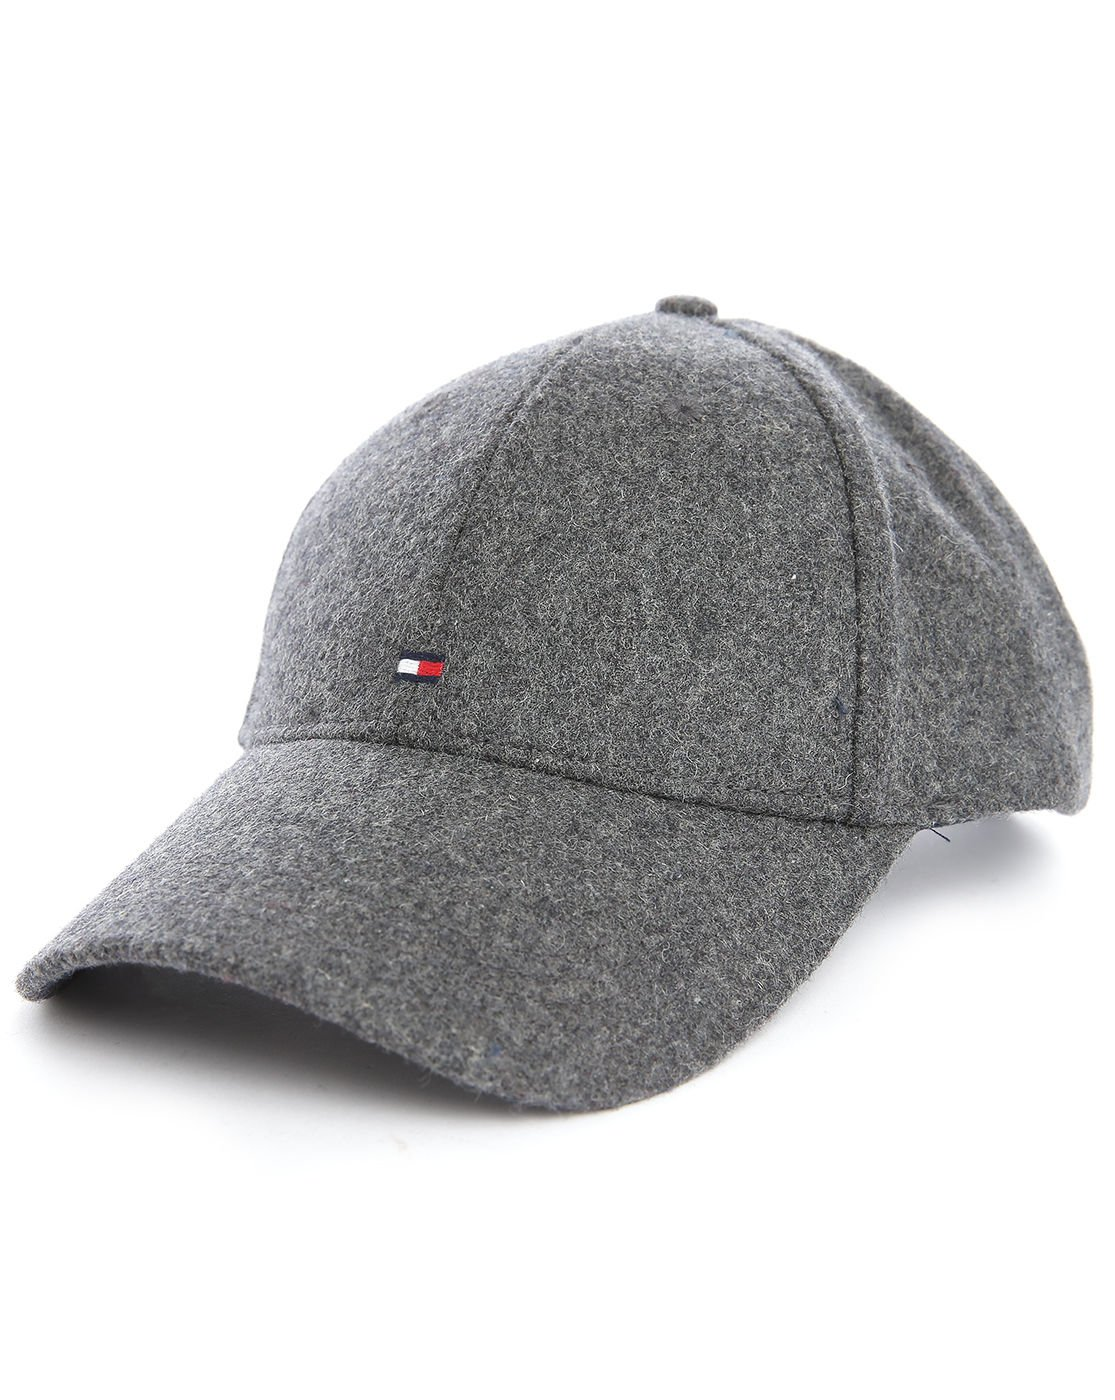 tommy hilfiger grey flag wool cap in gray for men lyst. Black Bedroom Furniture Sets. Home Design Ideas